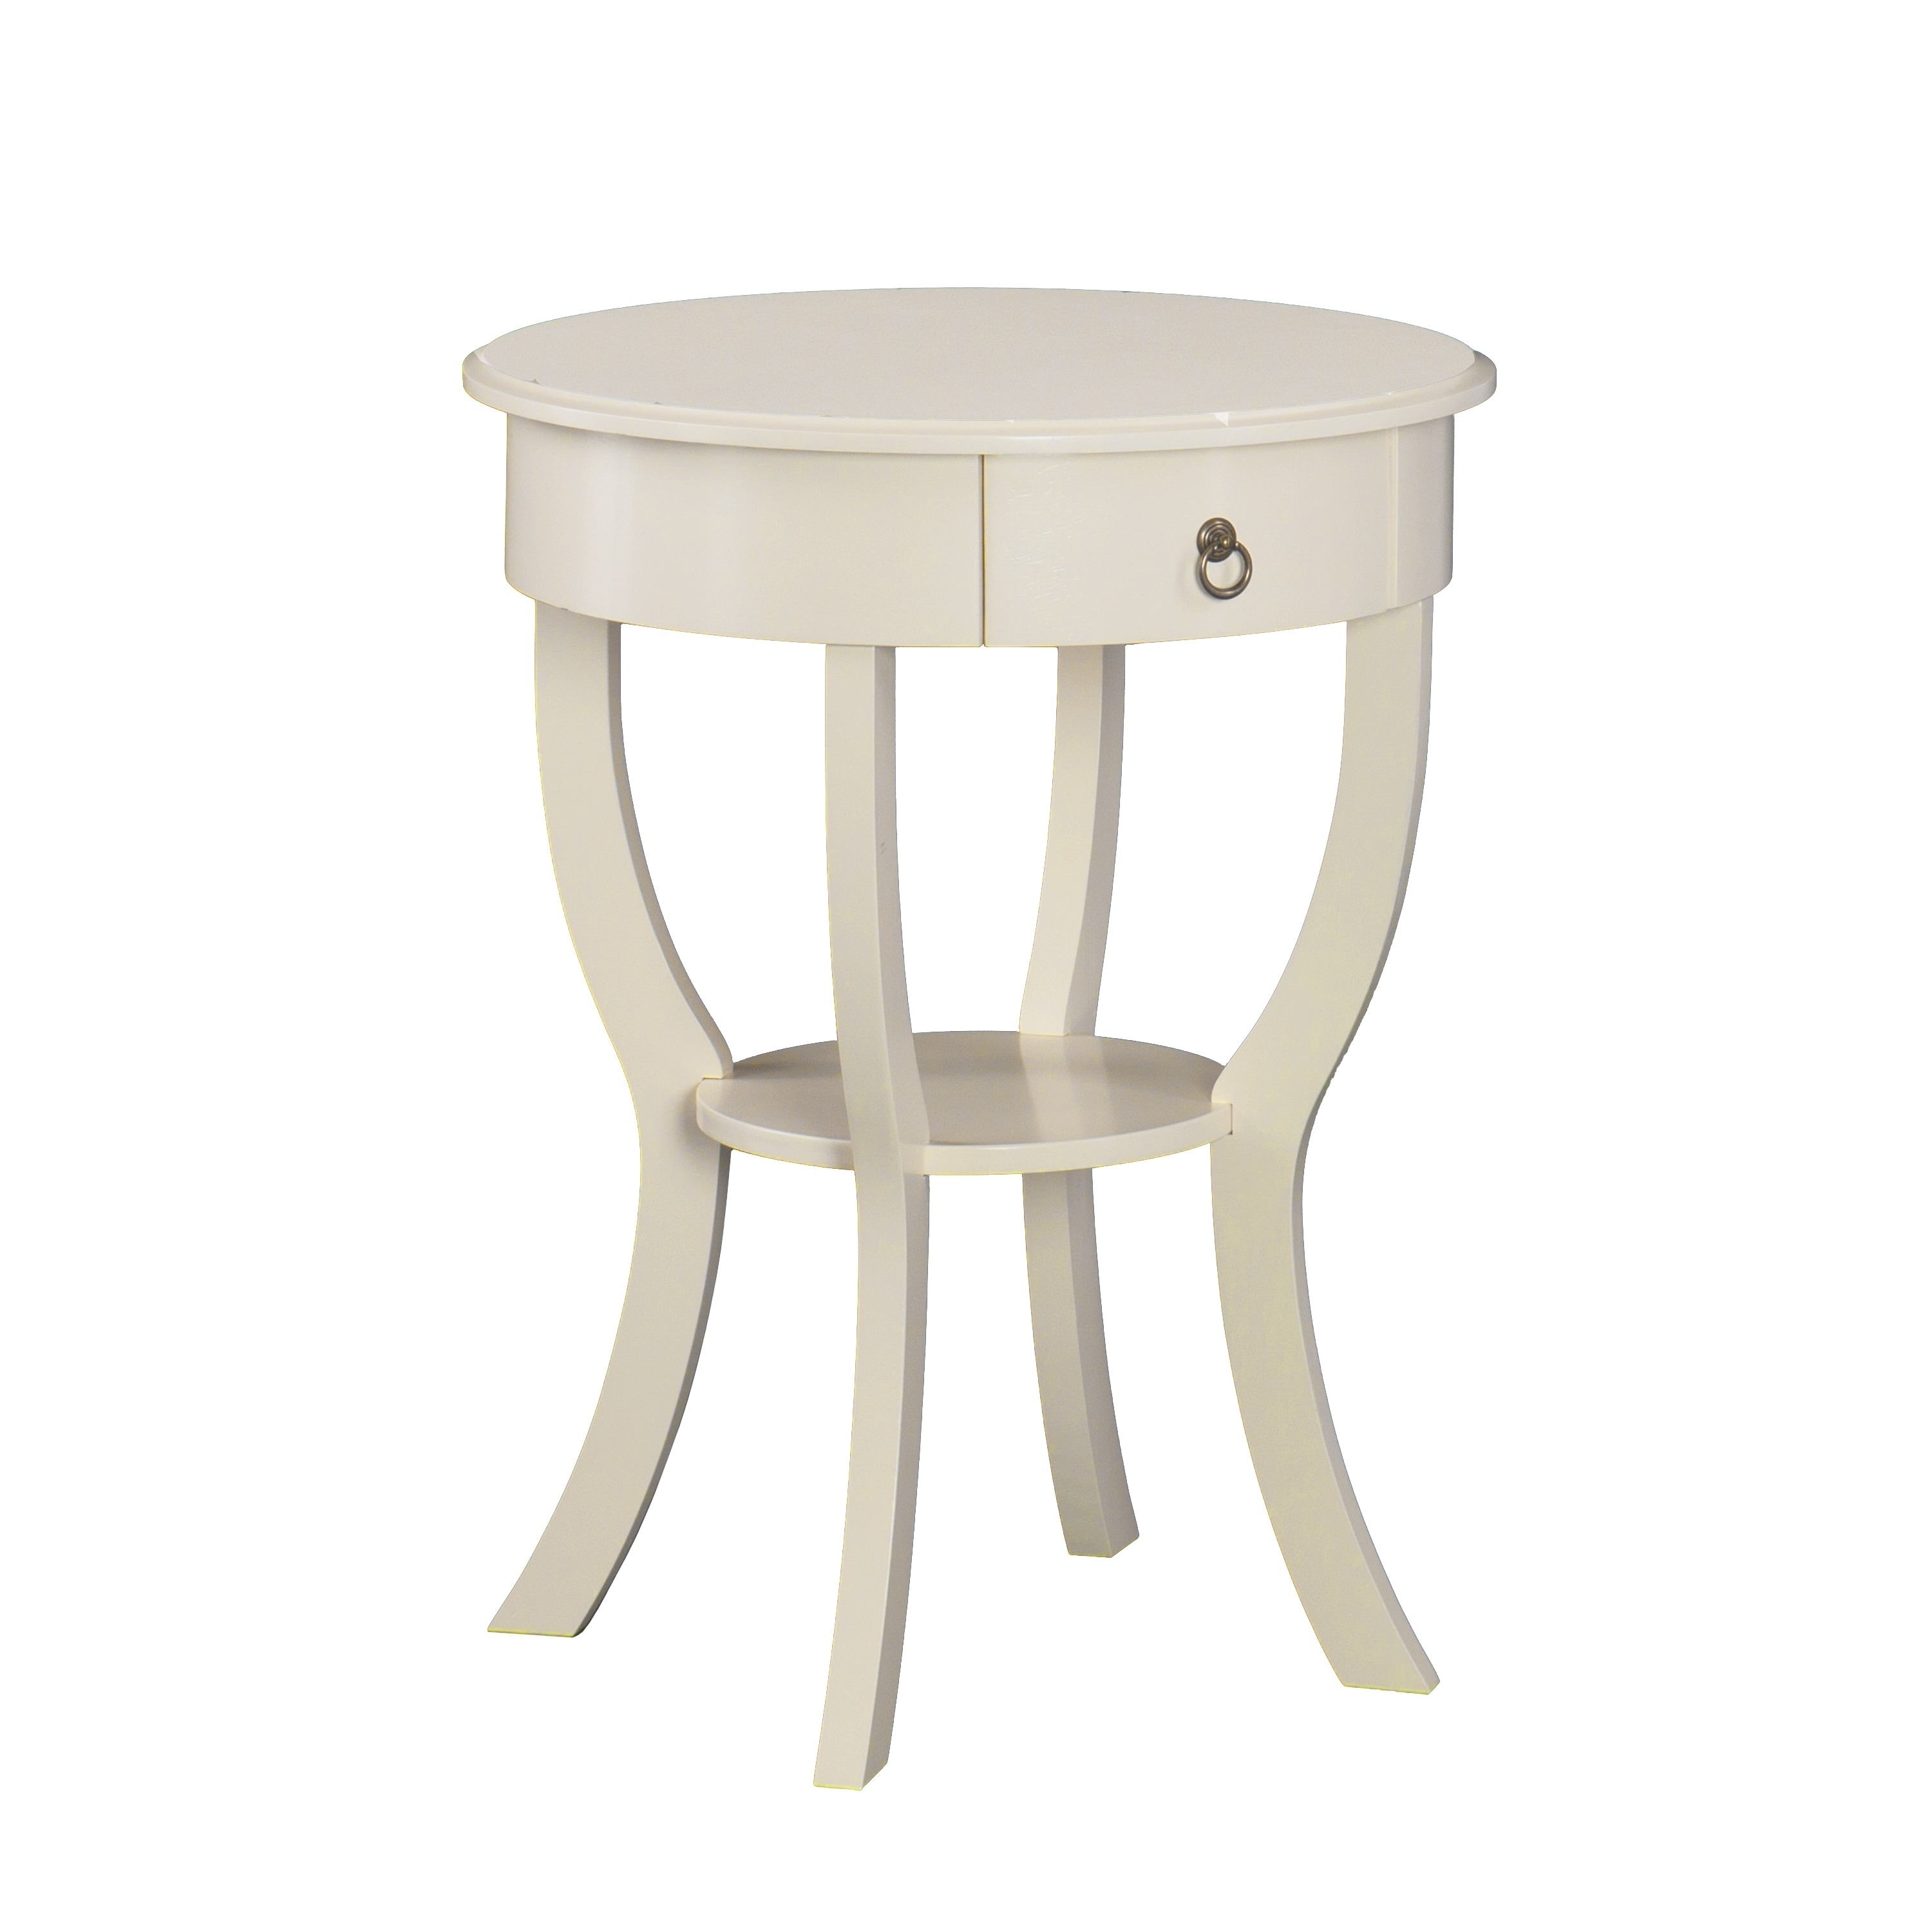 harper blvd lyman tall accent table with storage free pedestal shipping today tree stump end spool side mirimyn small black round plastic garden pool lamps plus wooden and chairs